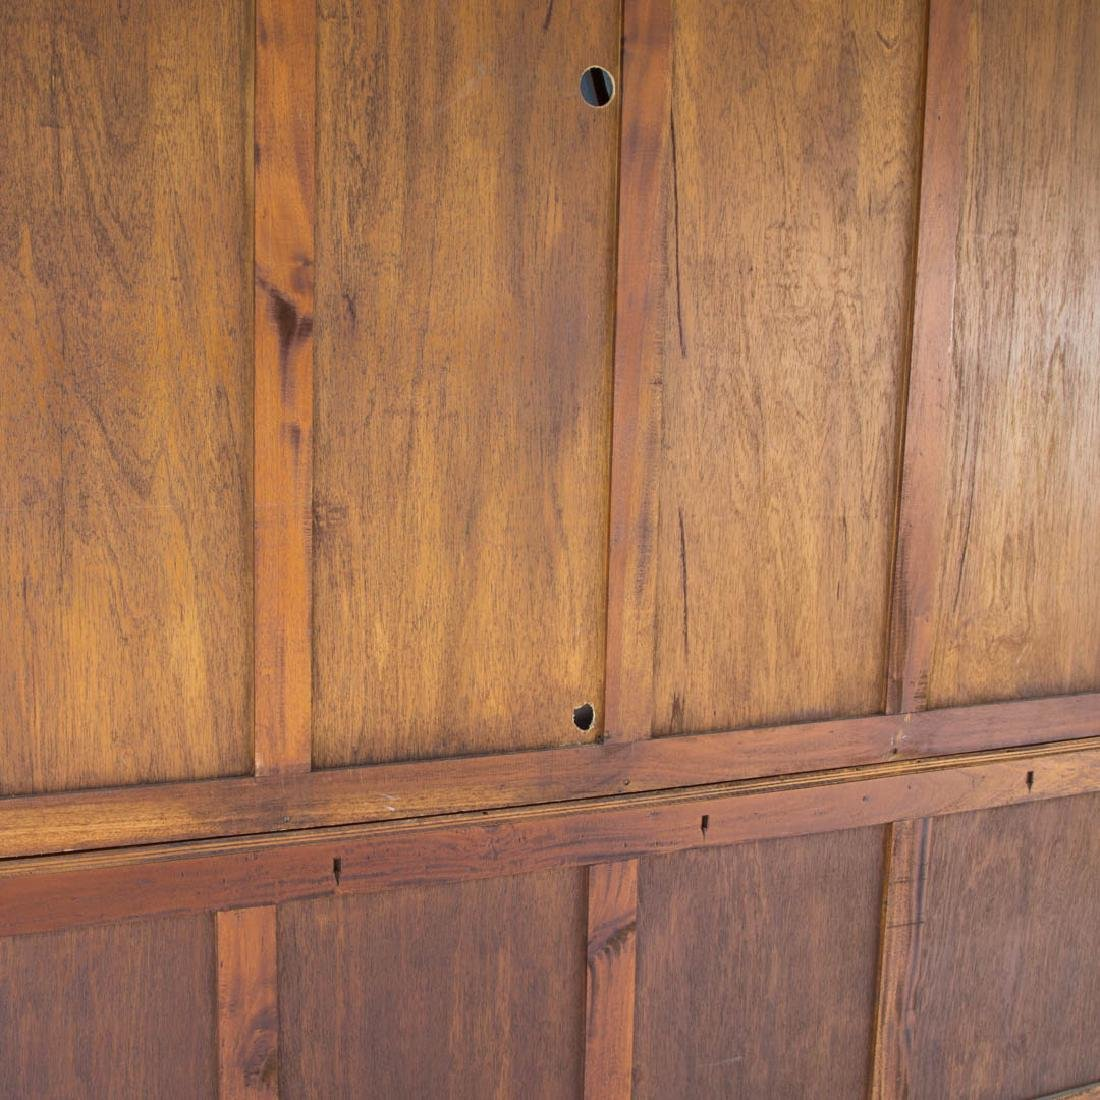 Chippendale style mahogany breakfront - 6